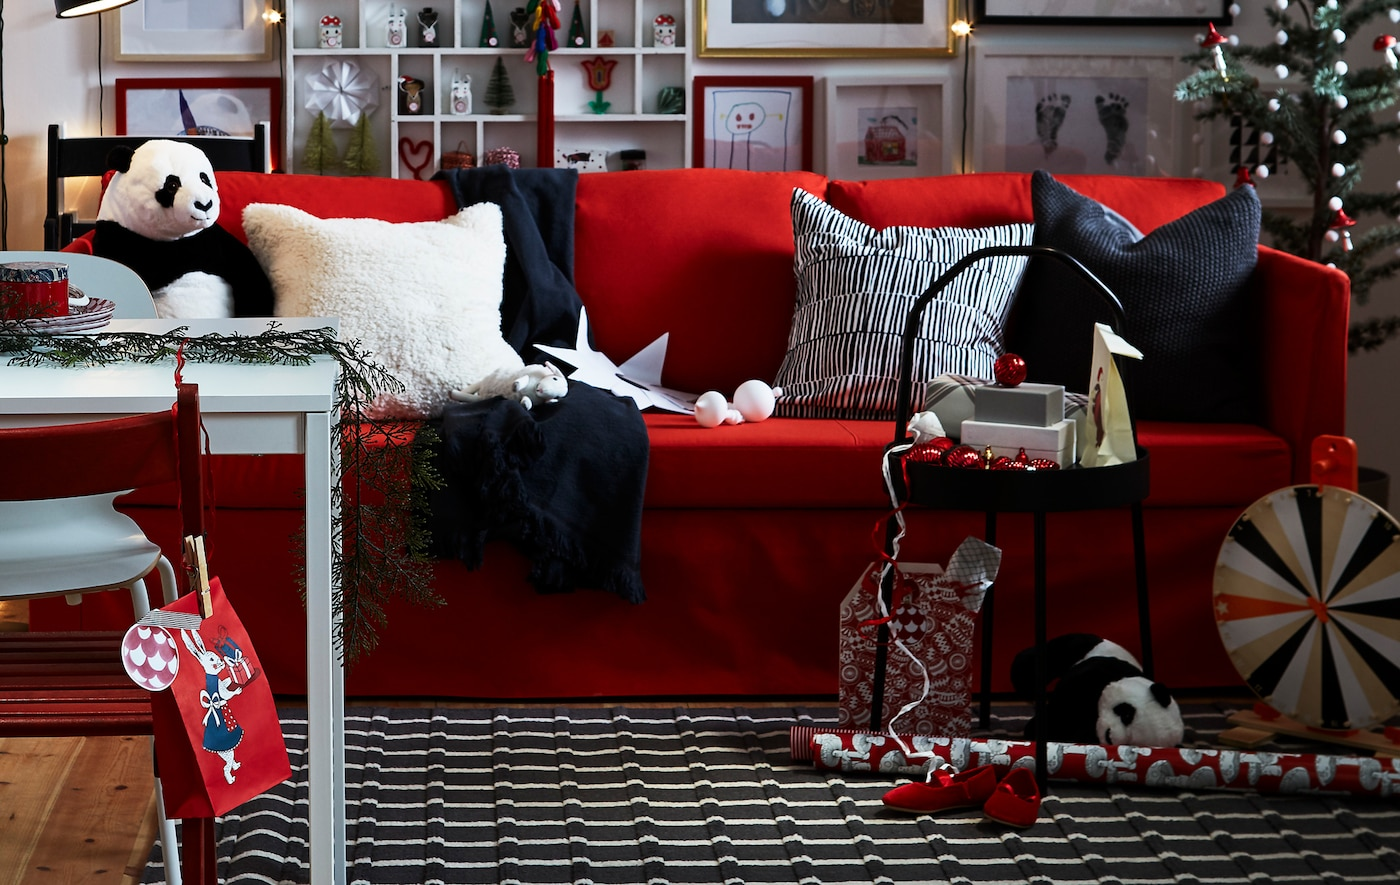 A red, black and white living room with festive decorations.